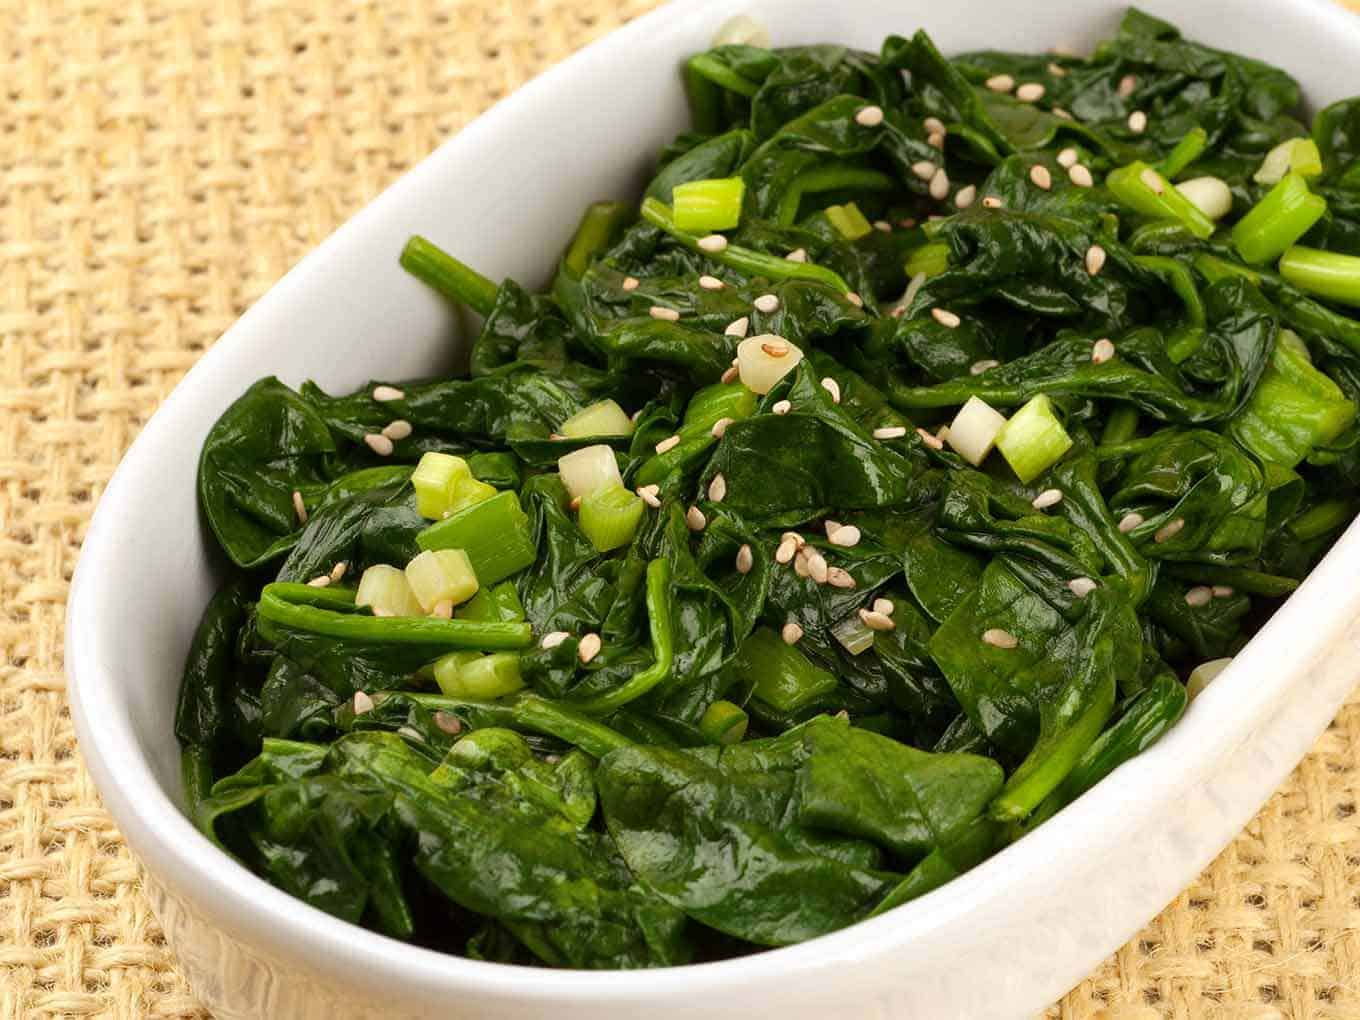 Serving dish of sautéed spinach topped with chopped scallions and sesame seeds.